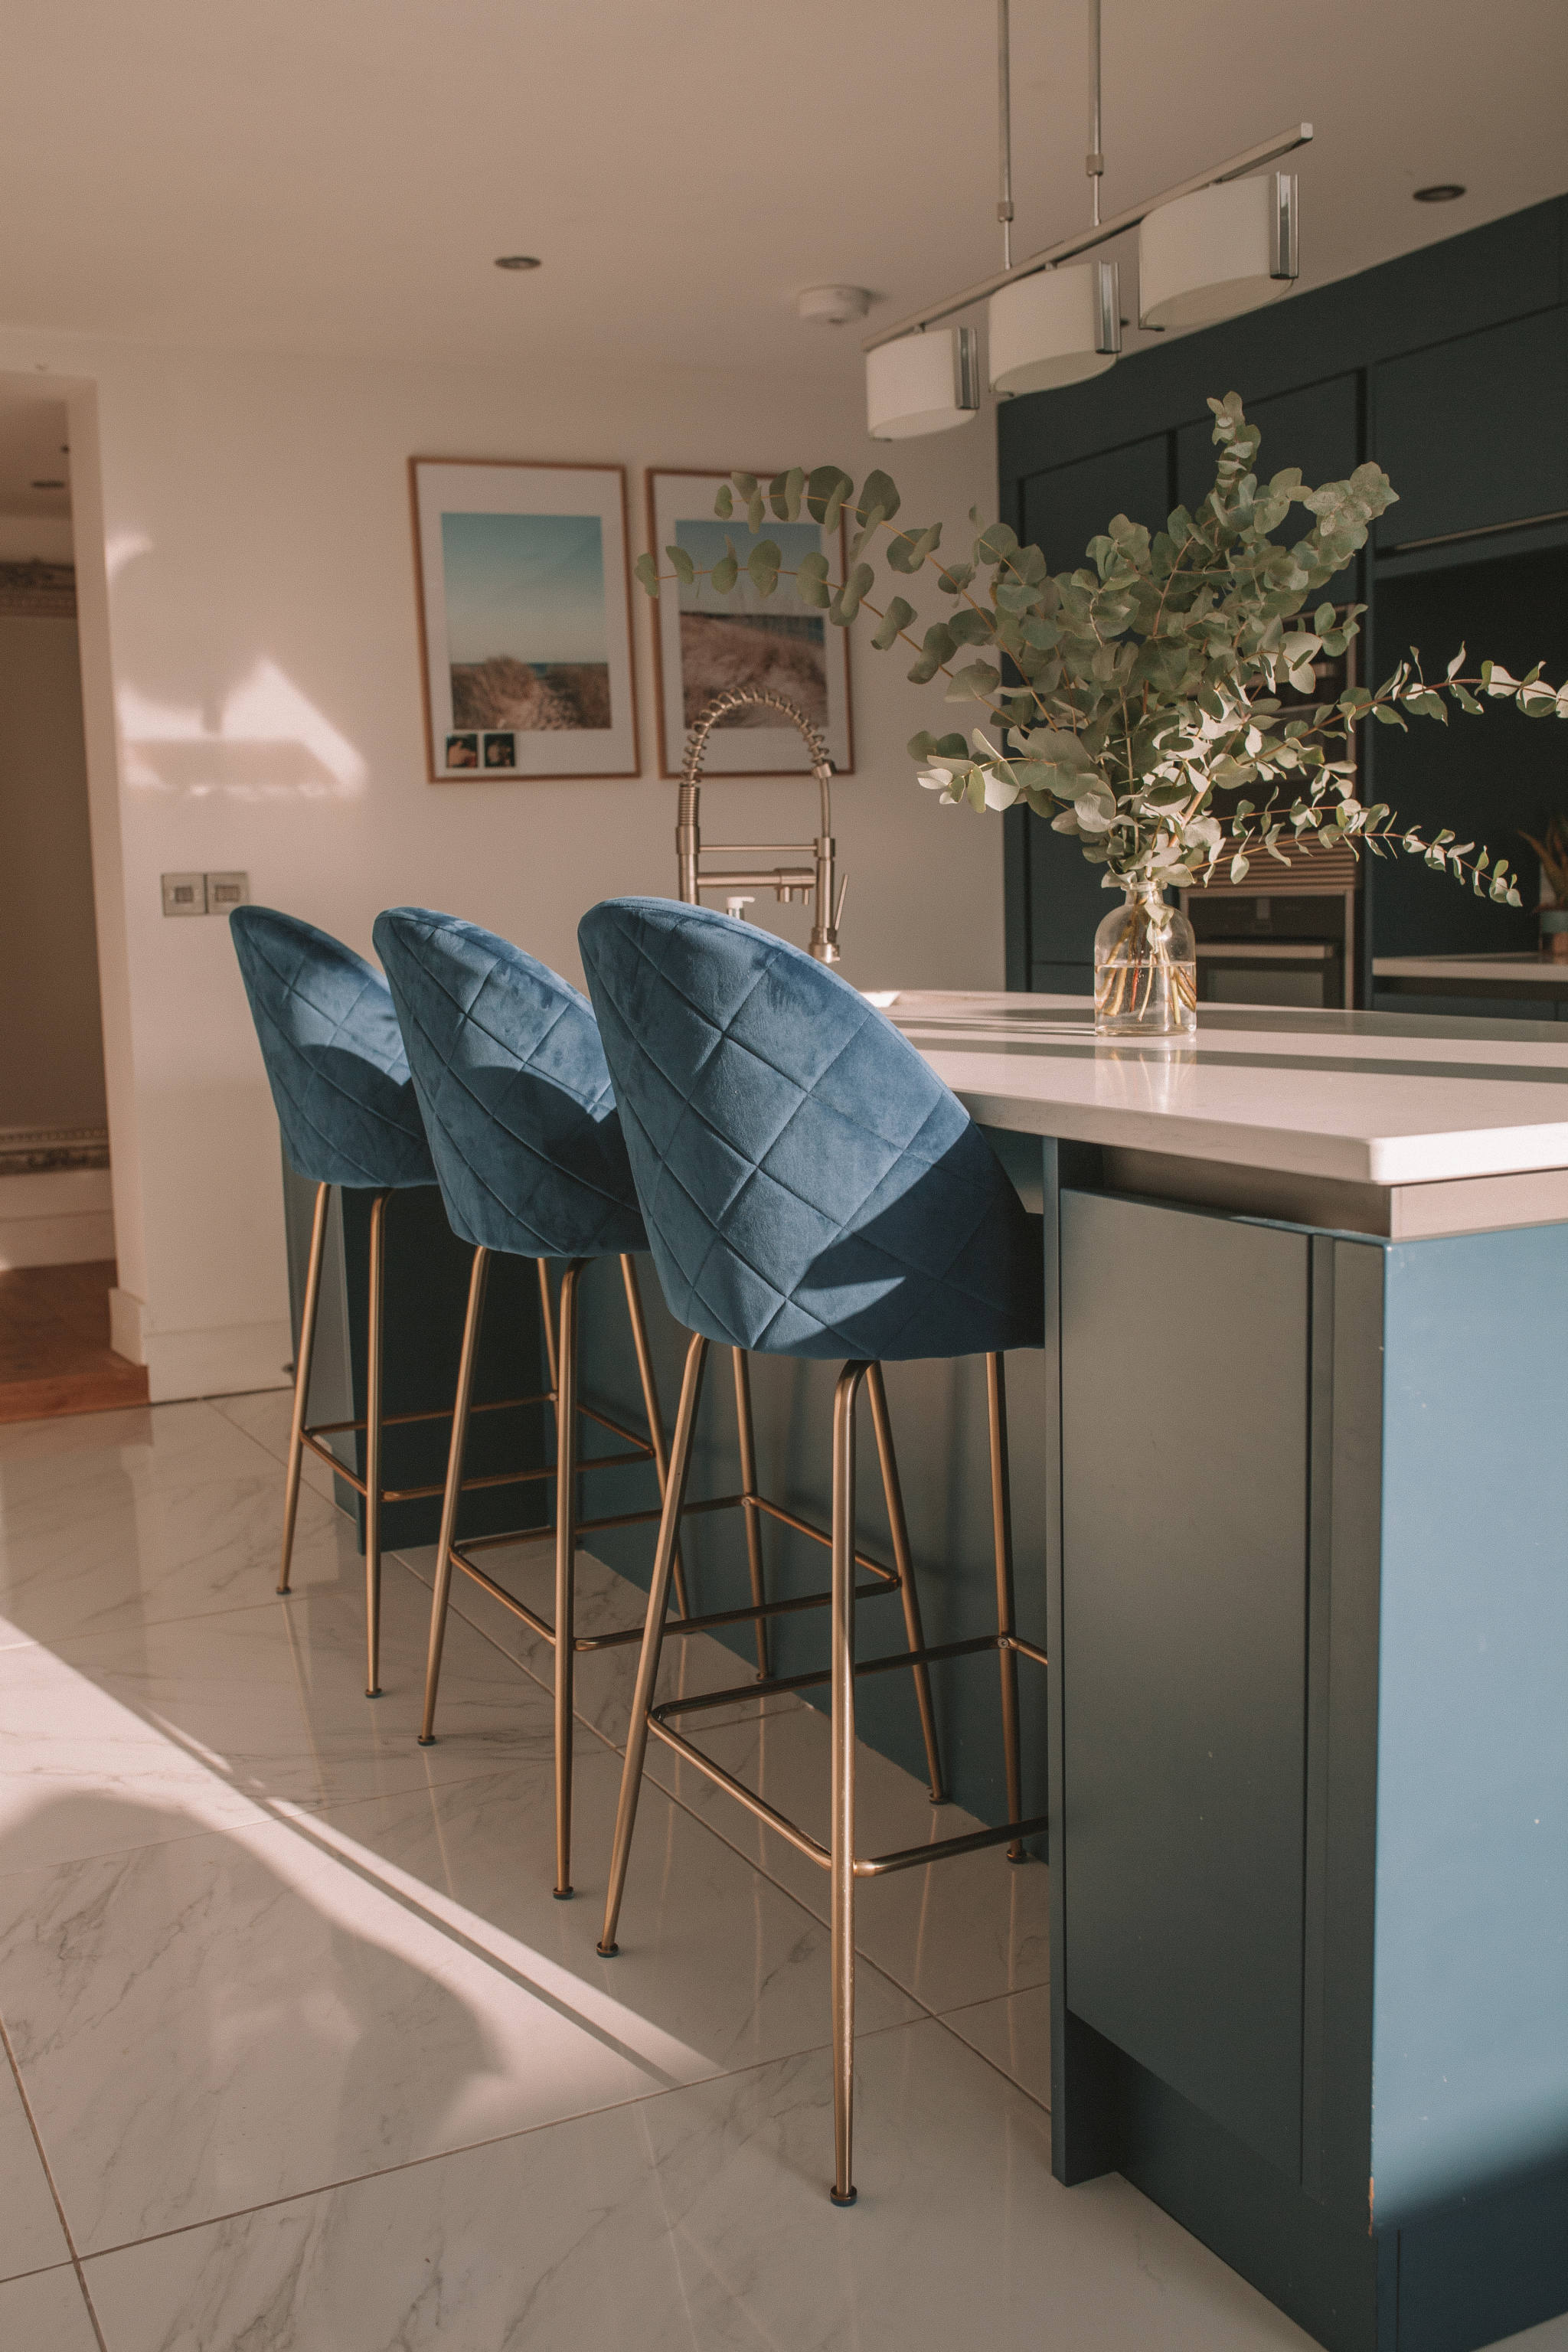 UPDATING THE KITCHEN WITH BLUE BAR STOOLS   Petite Side of Style